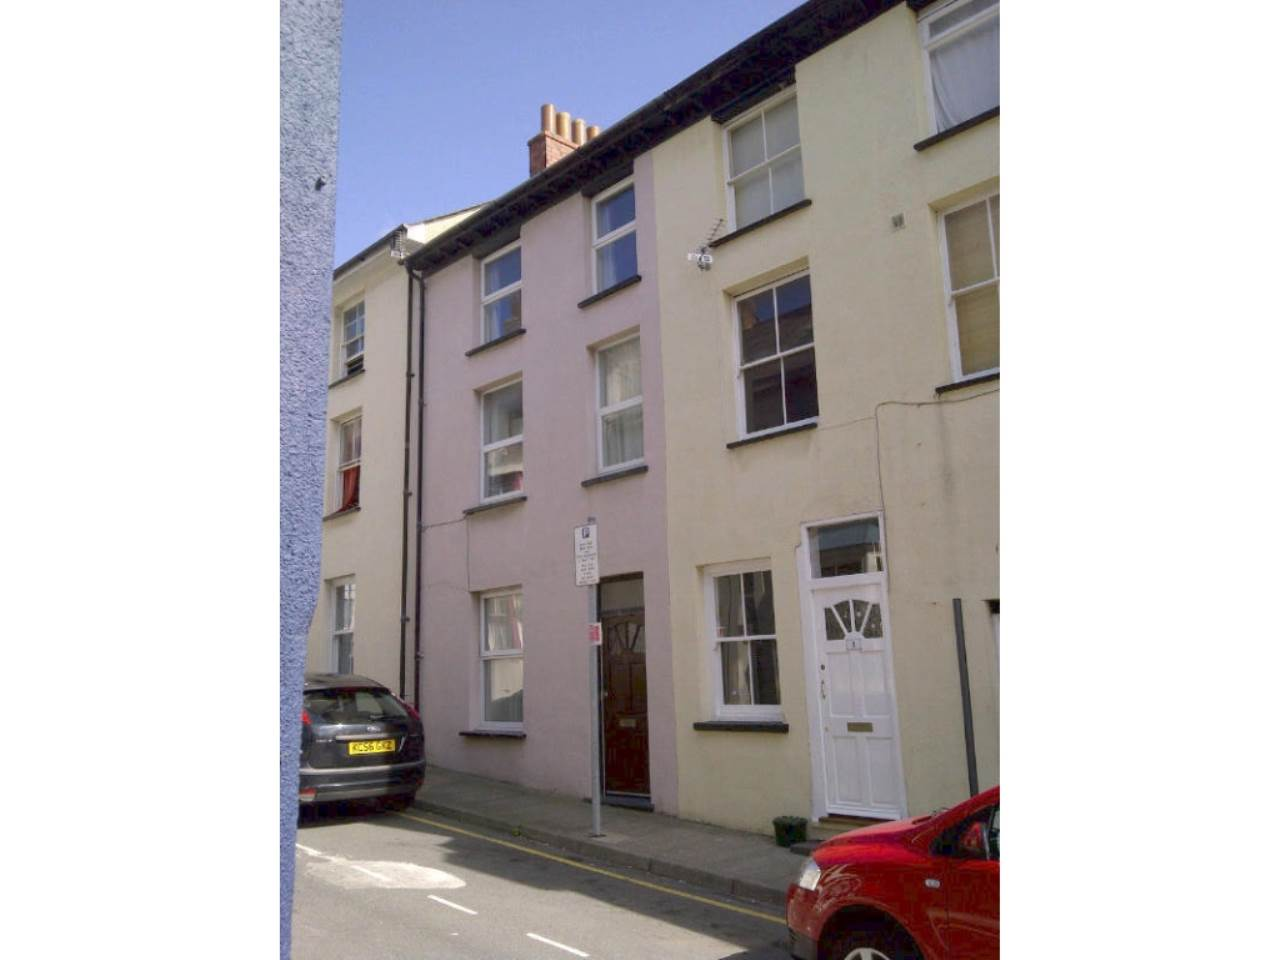 3 bed house to rent in George Street, Aberystwyth, SY23